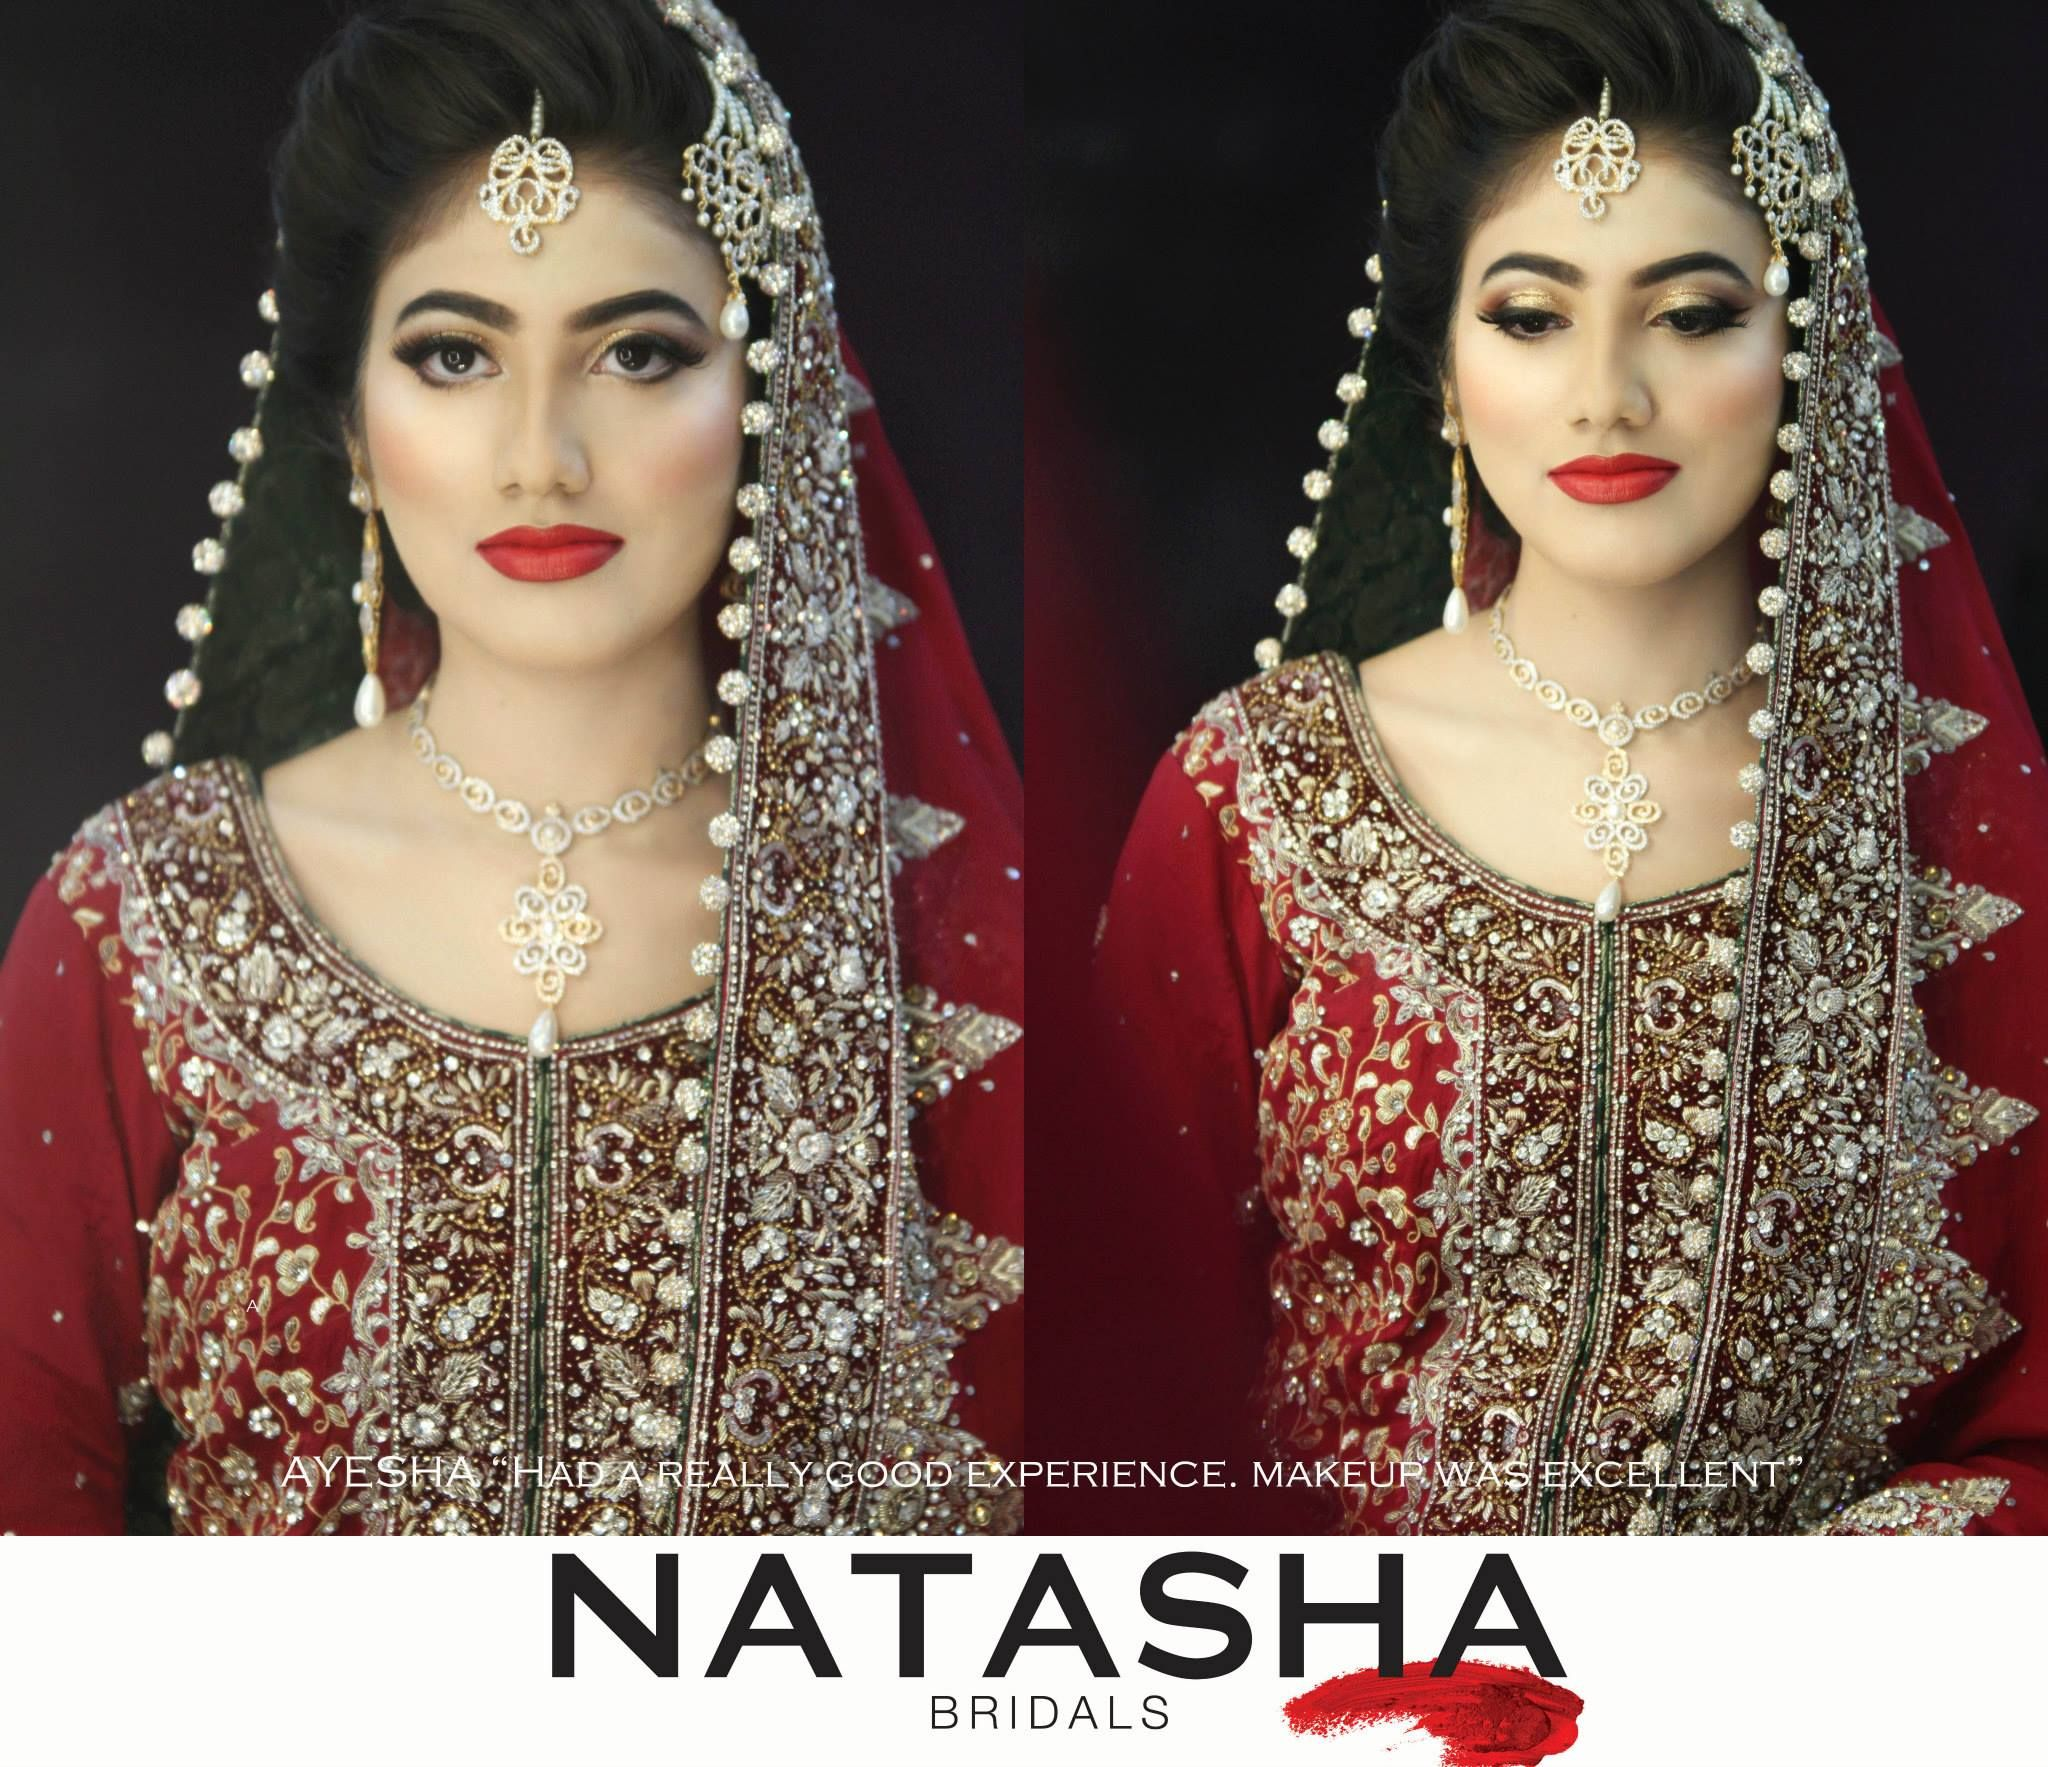 Bridal Makeup Salon Nikkah Bride Makeup By Natasha Beauty Salon Nikkah